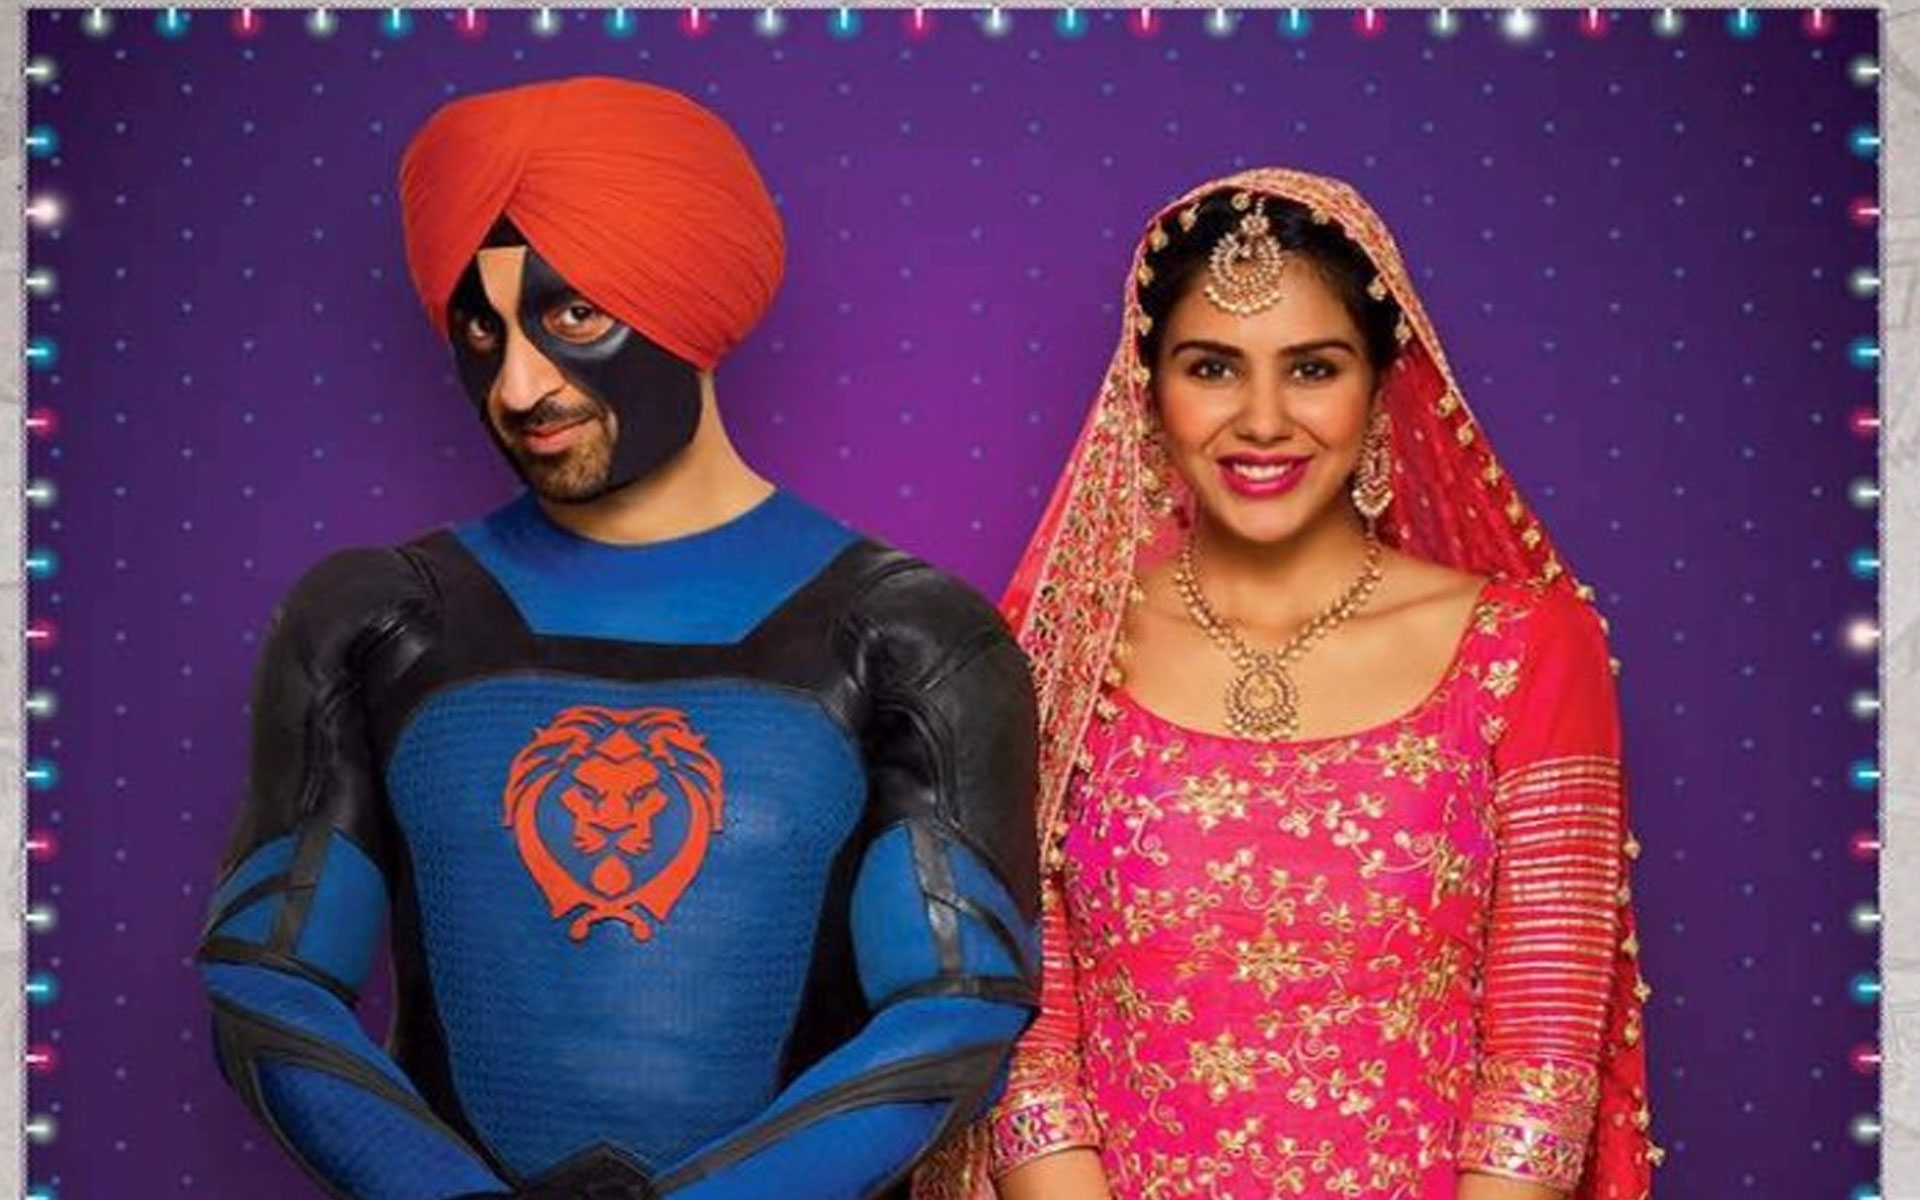 Super Singh movie offended Sikh sentiments said SGPC Chief